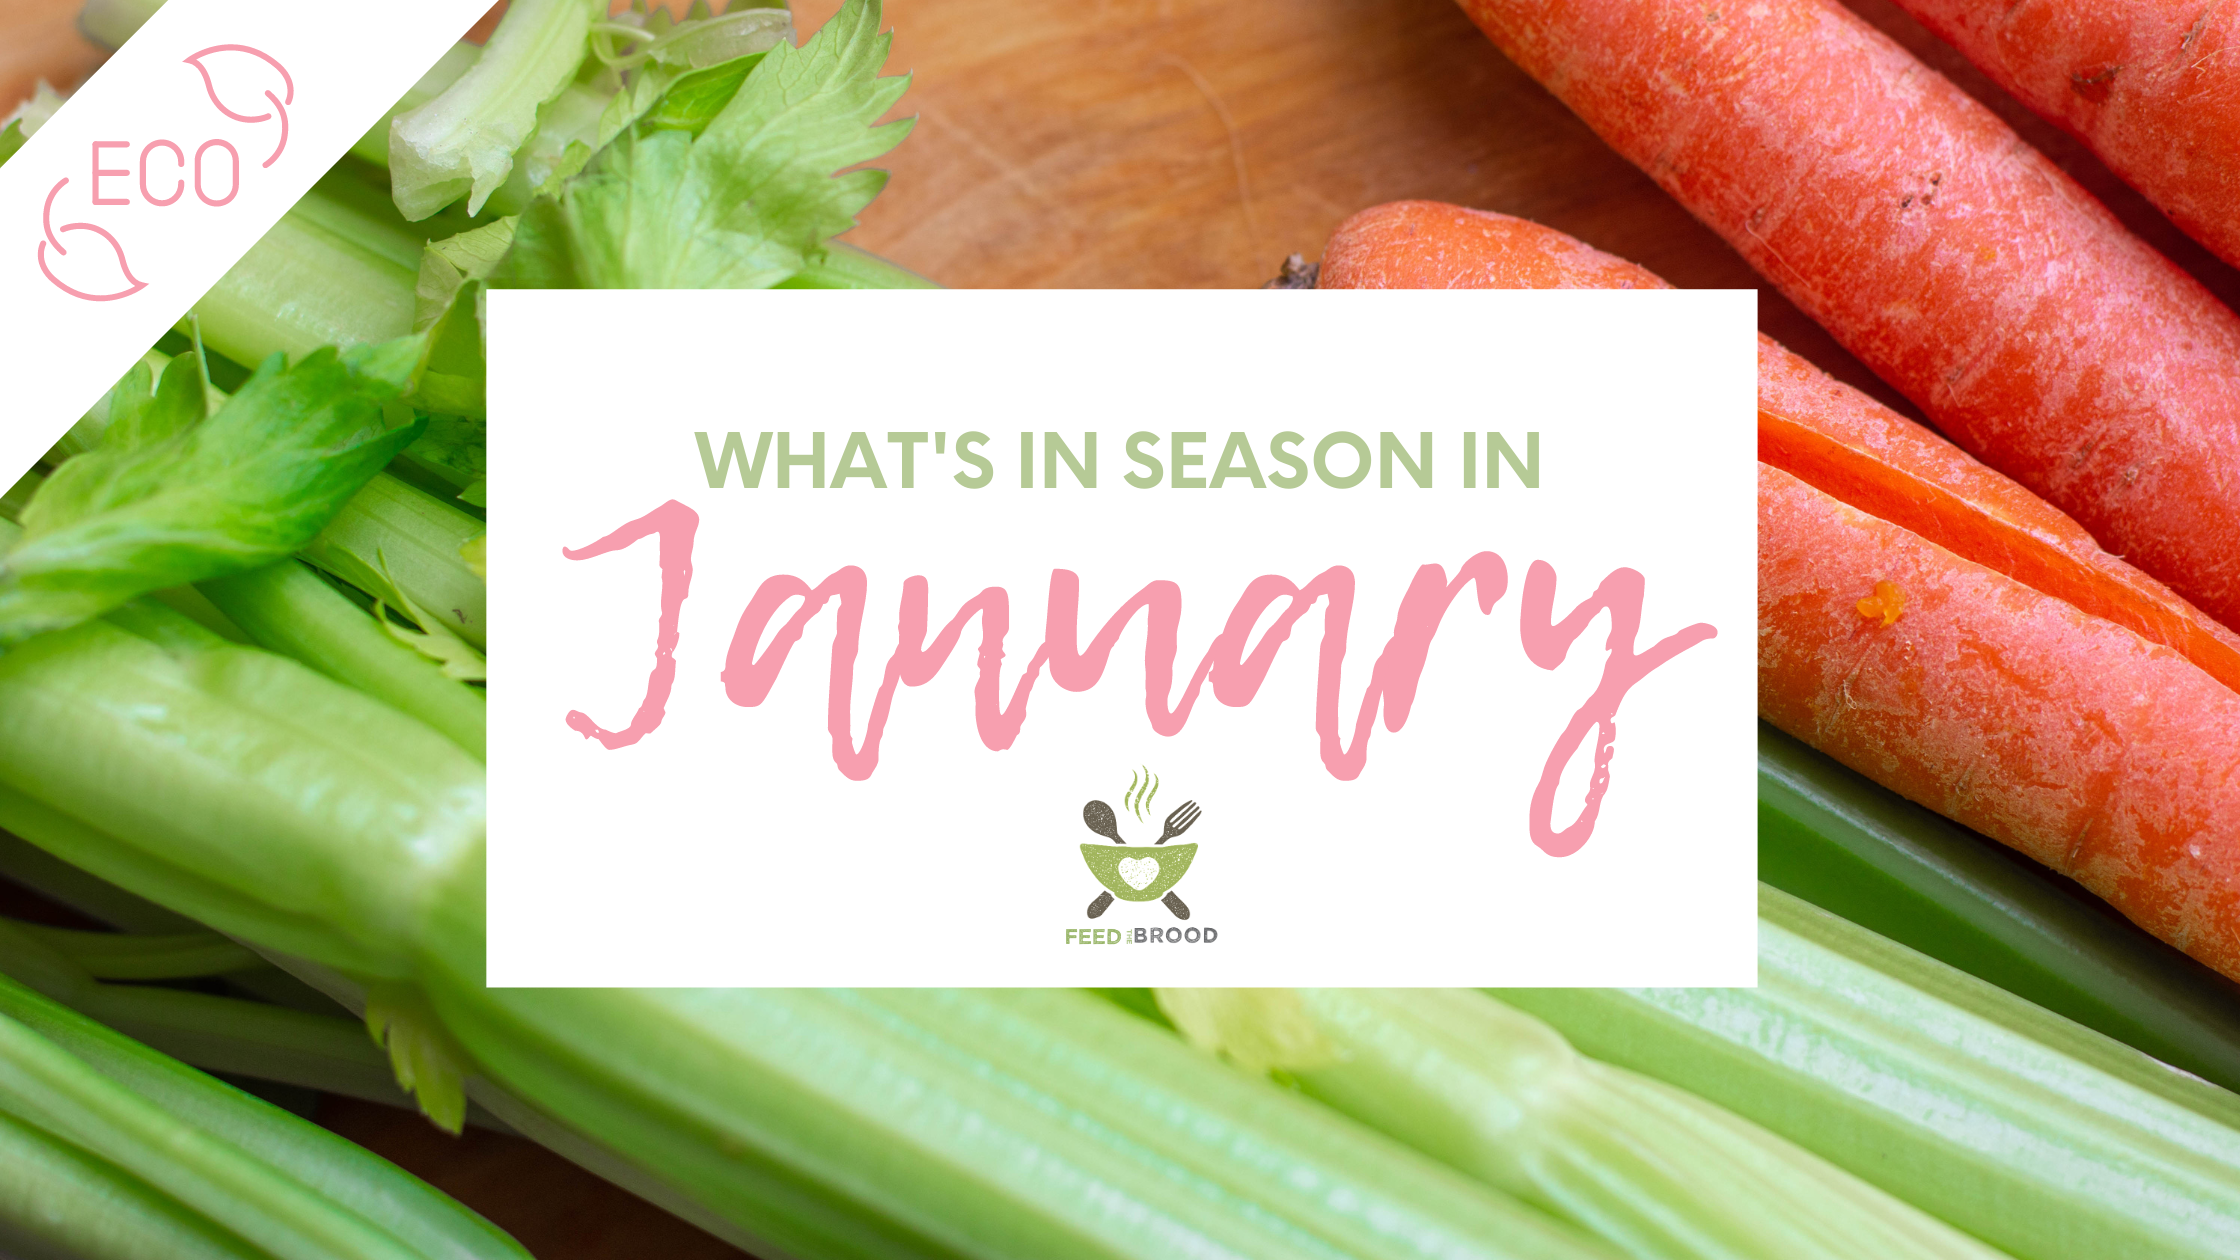 What's in season in January